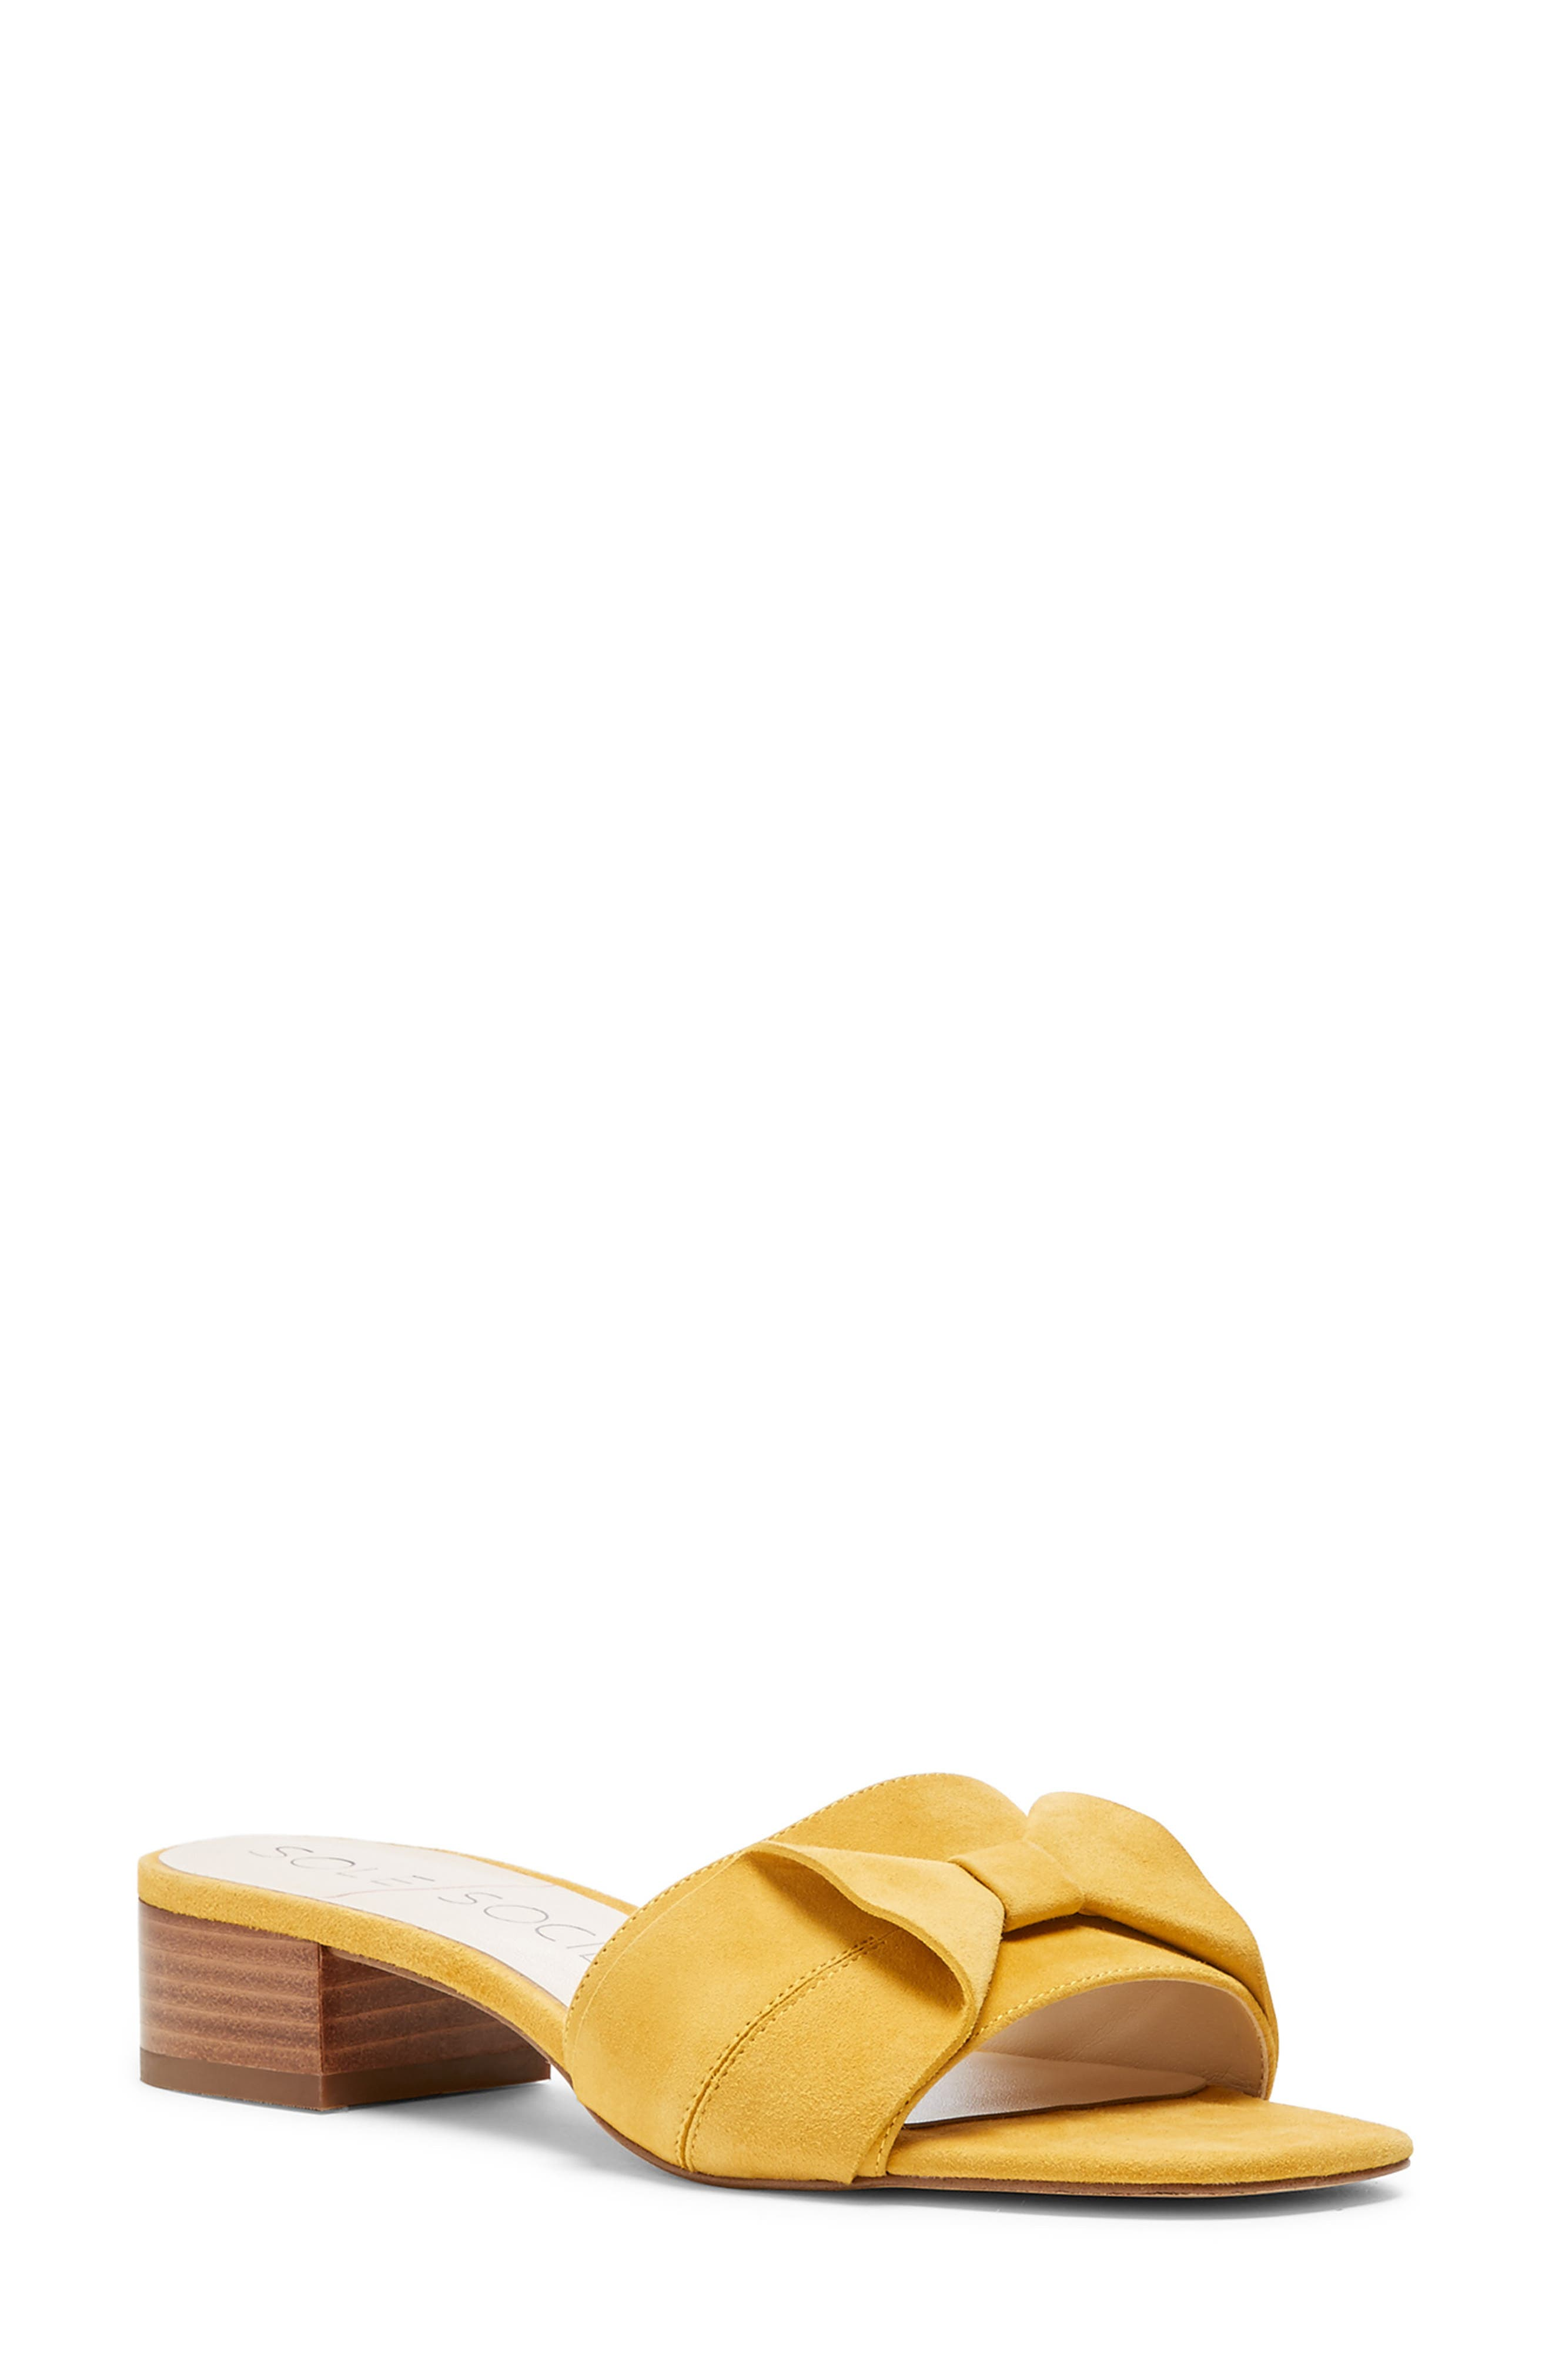 Sole Society Erianna Bow Slide Sandal- Yellow